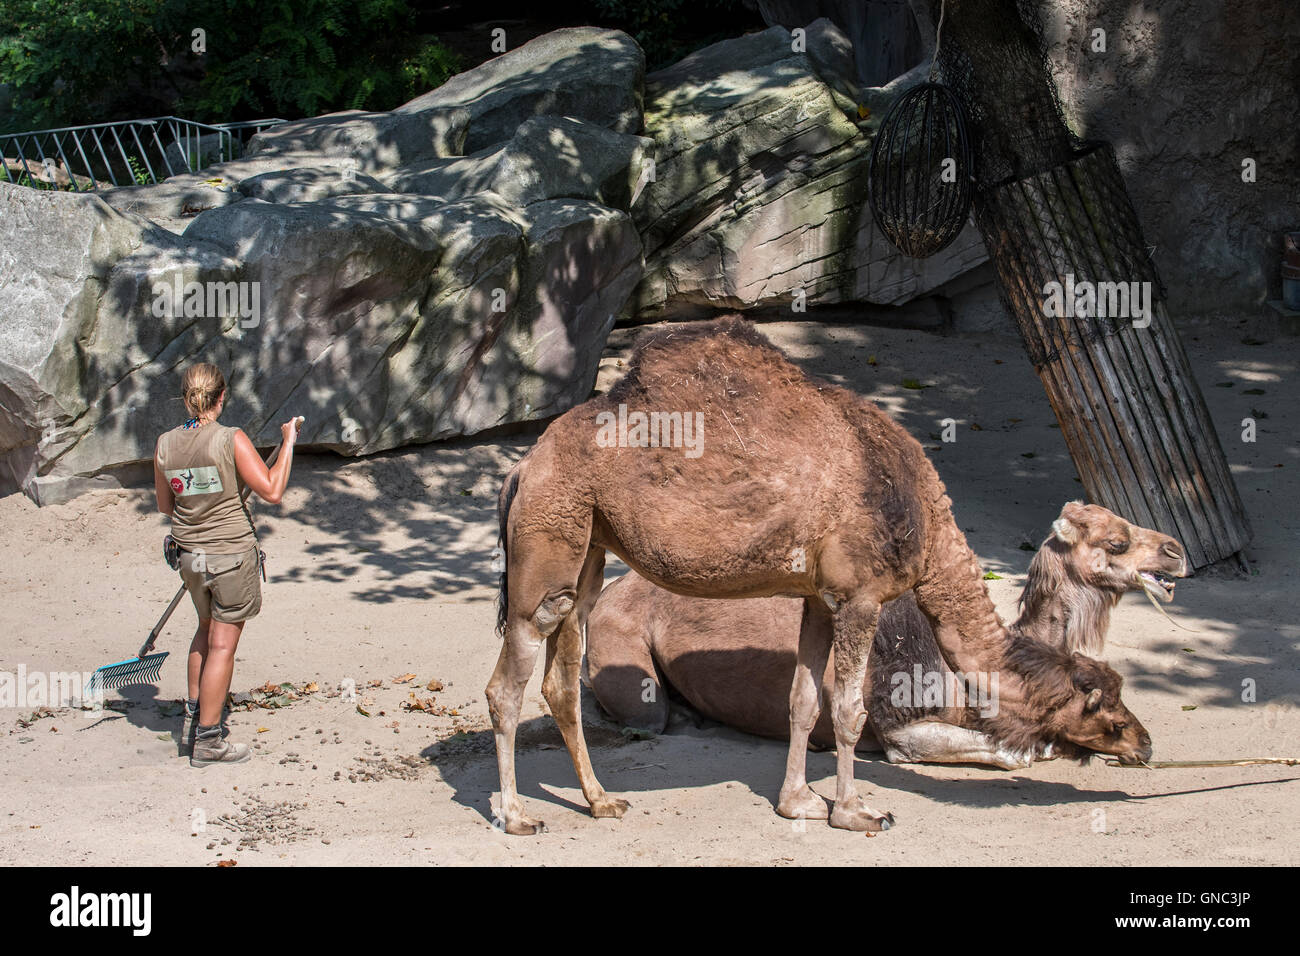 Zookeeper cleaning up the dromedary enclosure at the Antwerp Zoo, Belgium - Stock Image